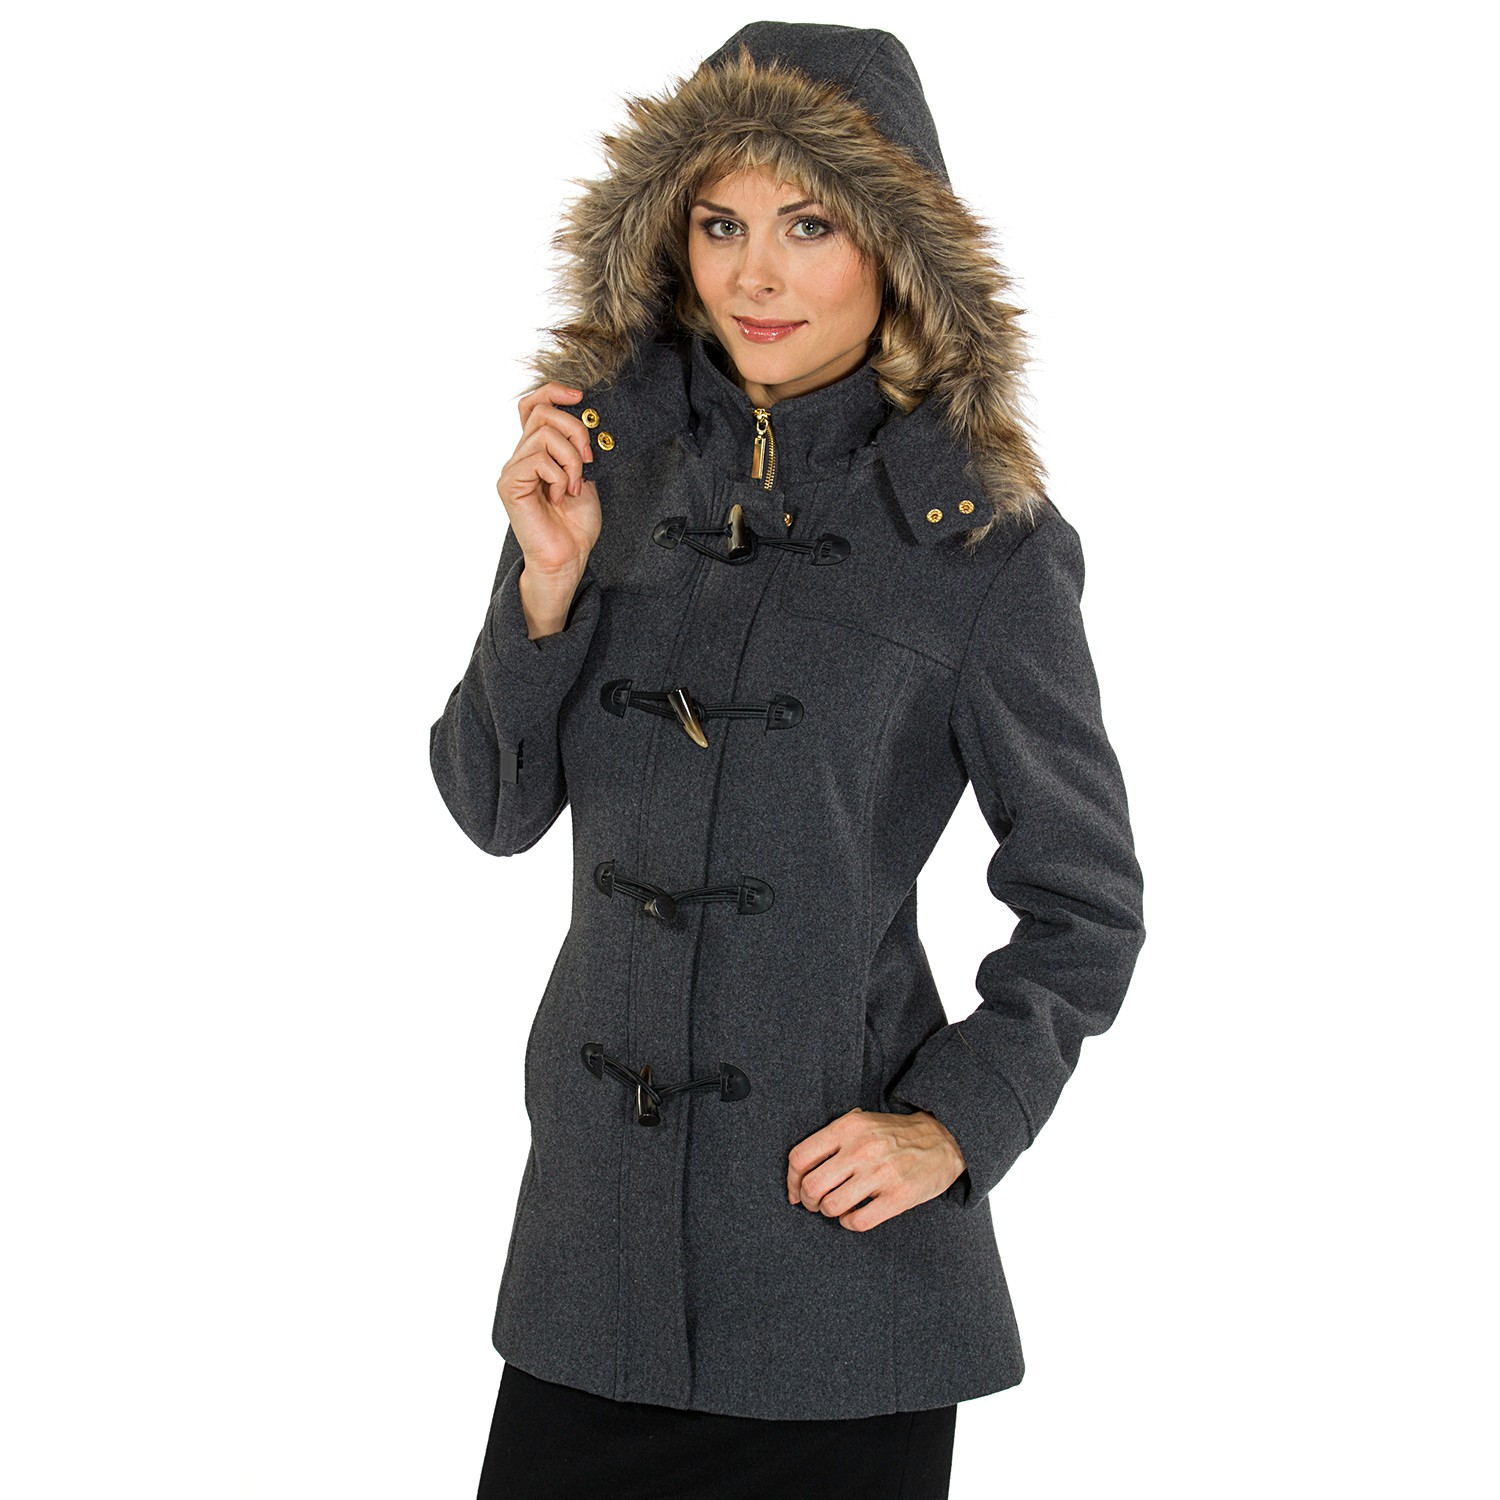 STYLISH OUTERWEAR FOR WOMEN. Outerwear can define a woman's look. This season's outerwear adapts to any weather with style. Wrap yourself in fleece, down or faux fur on the coldest of days. HOODED FAUX FUR COAT. MASCULINE COAT. DOUBLE-BREASTED COAT. WATER RESISTANT QUILTED COAT. NEW. DOUBLE-BREASTED COLORED COAT. COLORS. TEXTURED COAT.